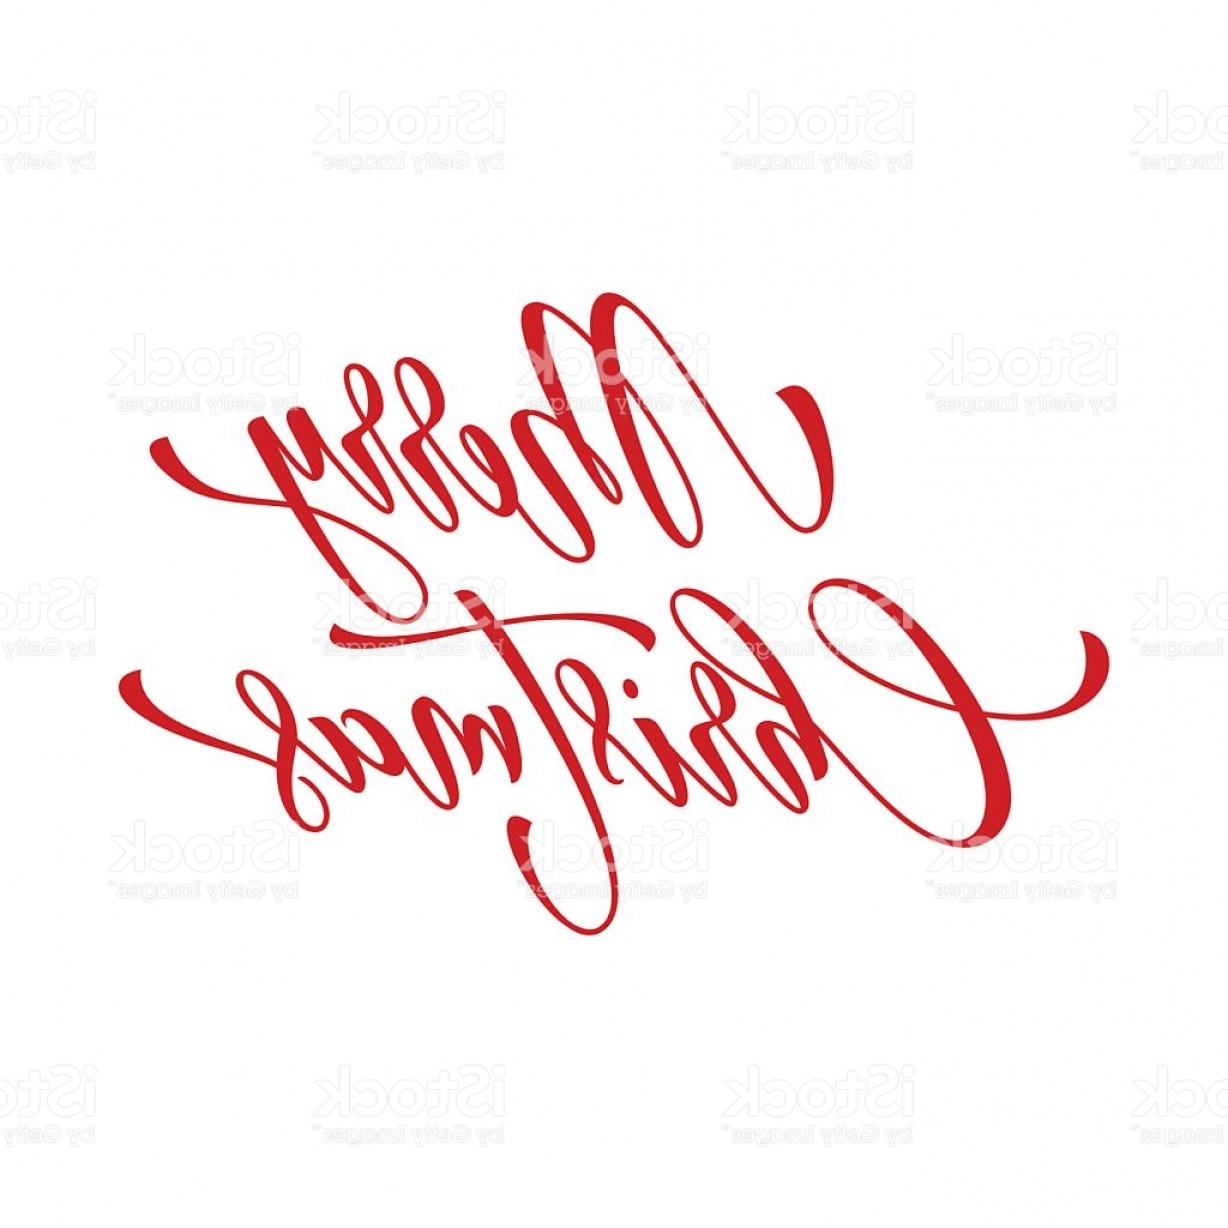 Merry Christmas Vector Graphic: Merry Christmas Vector Text Calligraphy Lettering Design Greeting Gm